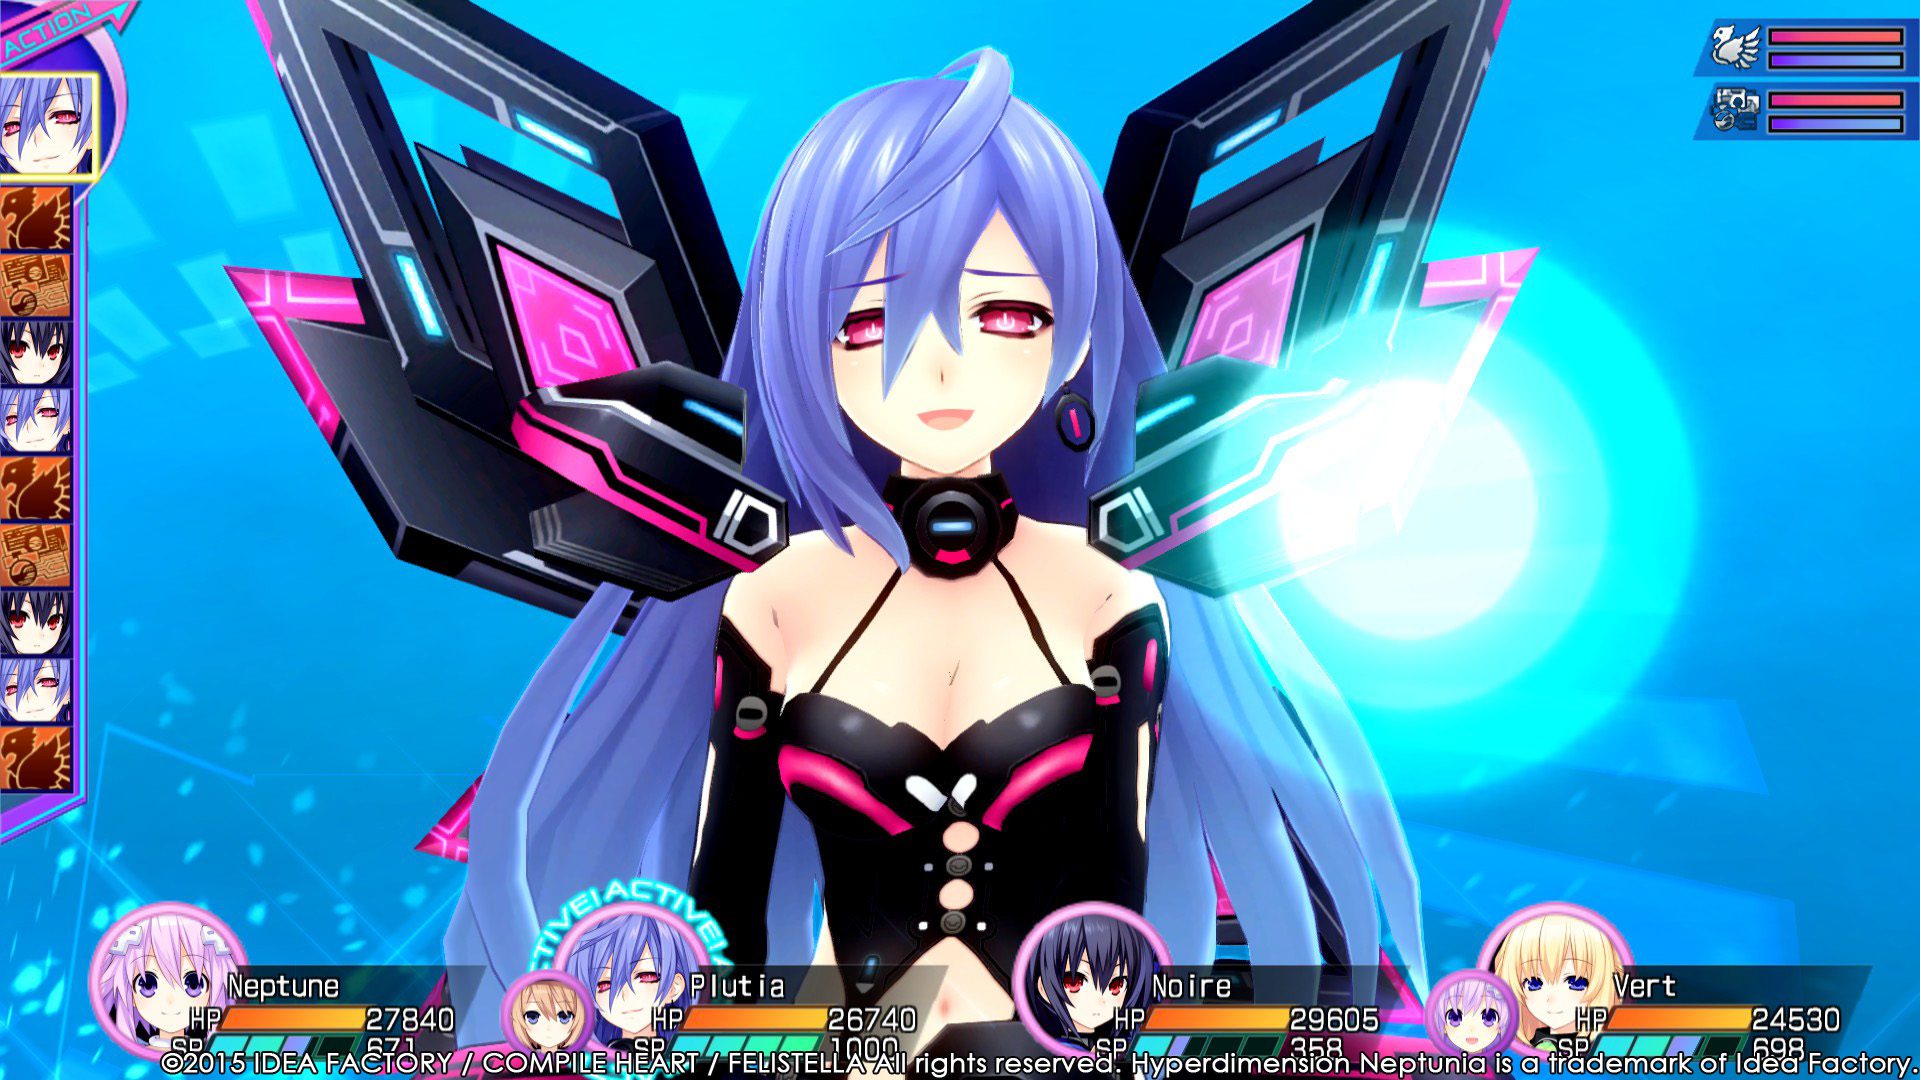 Hyperdimension Neptunia Re;Birth 3 V Generation (PC) Review